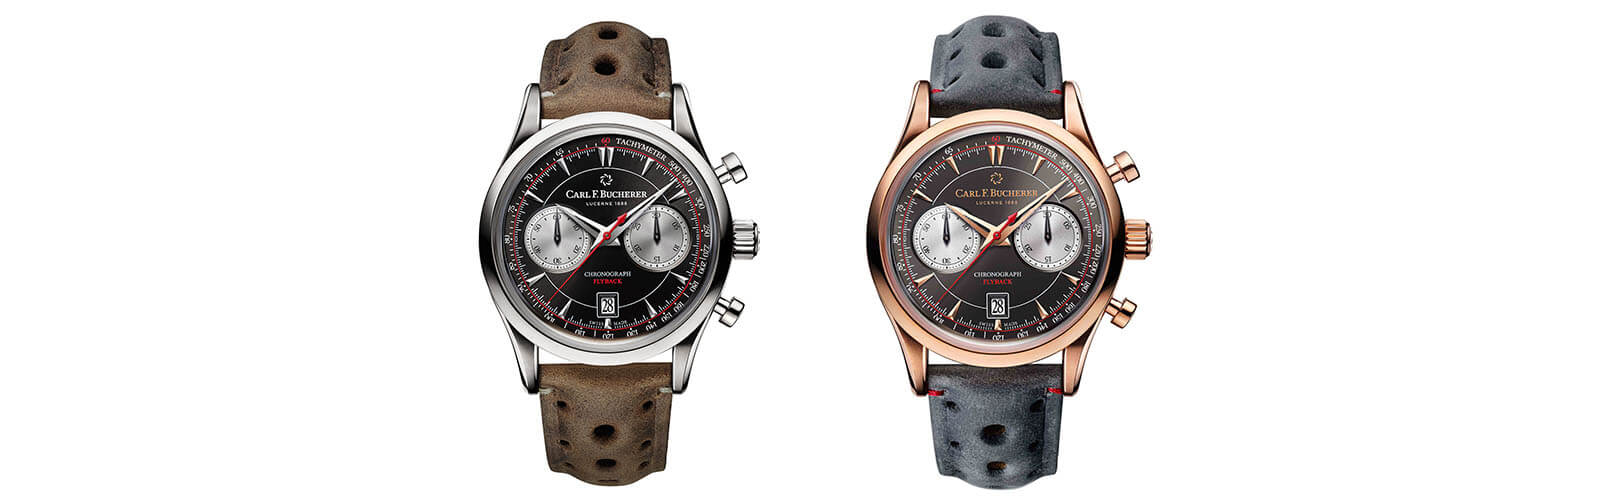 CARL F BUCHERER-Manero-Flyback-Retro-Header1